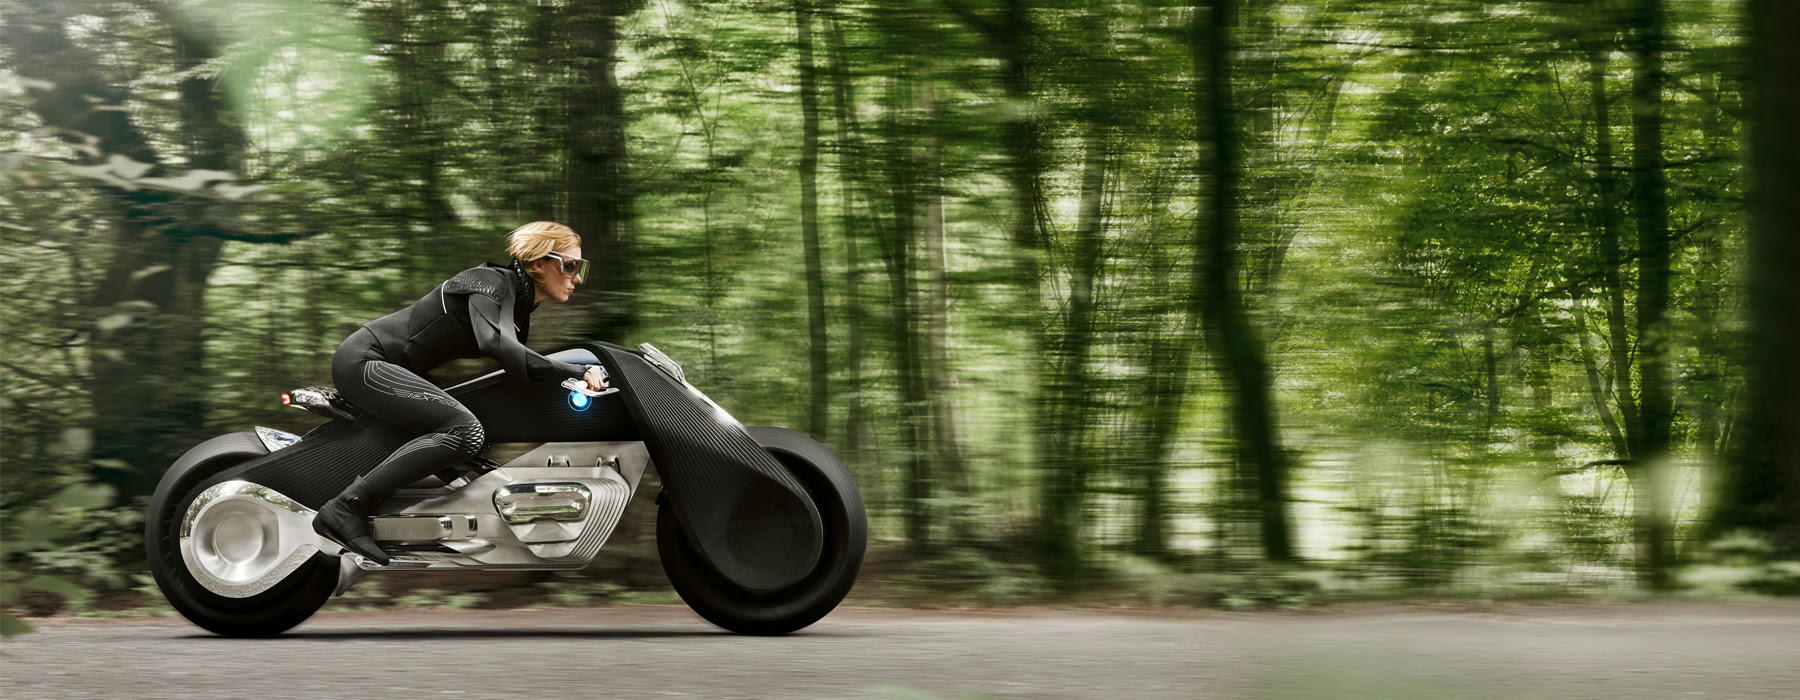 autonomous and fully connected BMW motorrad VISION NEXT 100 motorcycle